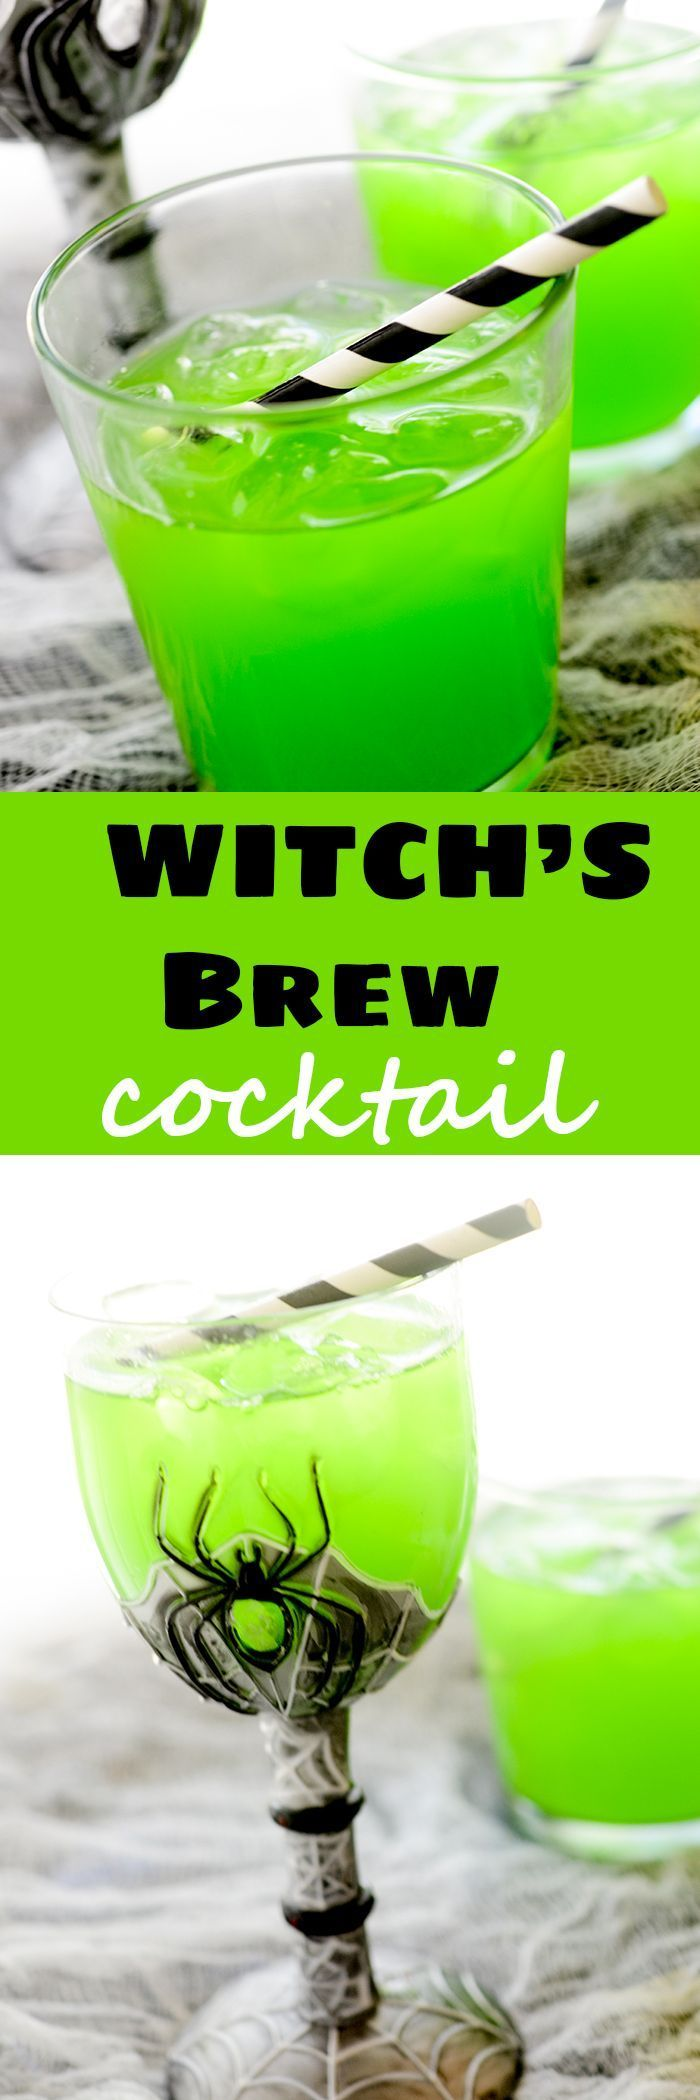 witch 39 s brew cocktail recipe green party ideas. Black Bedroom Furniture Sets. Home Design Ideas